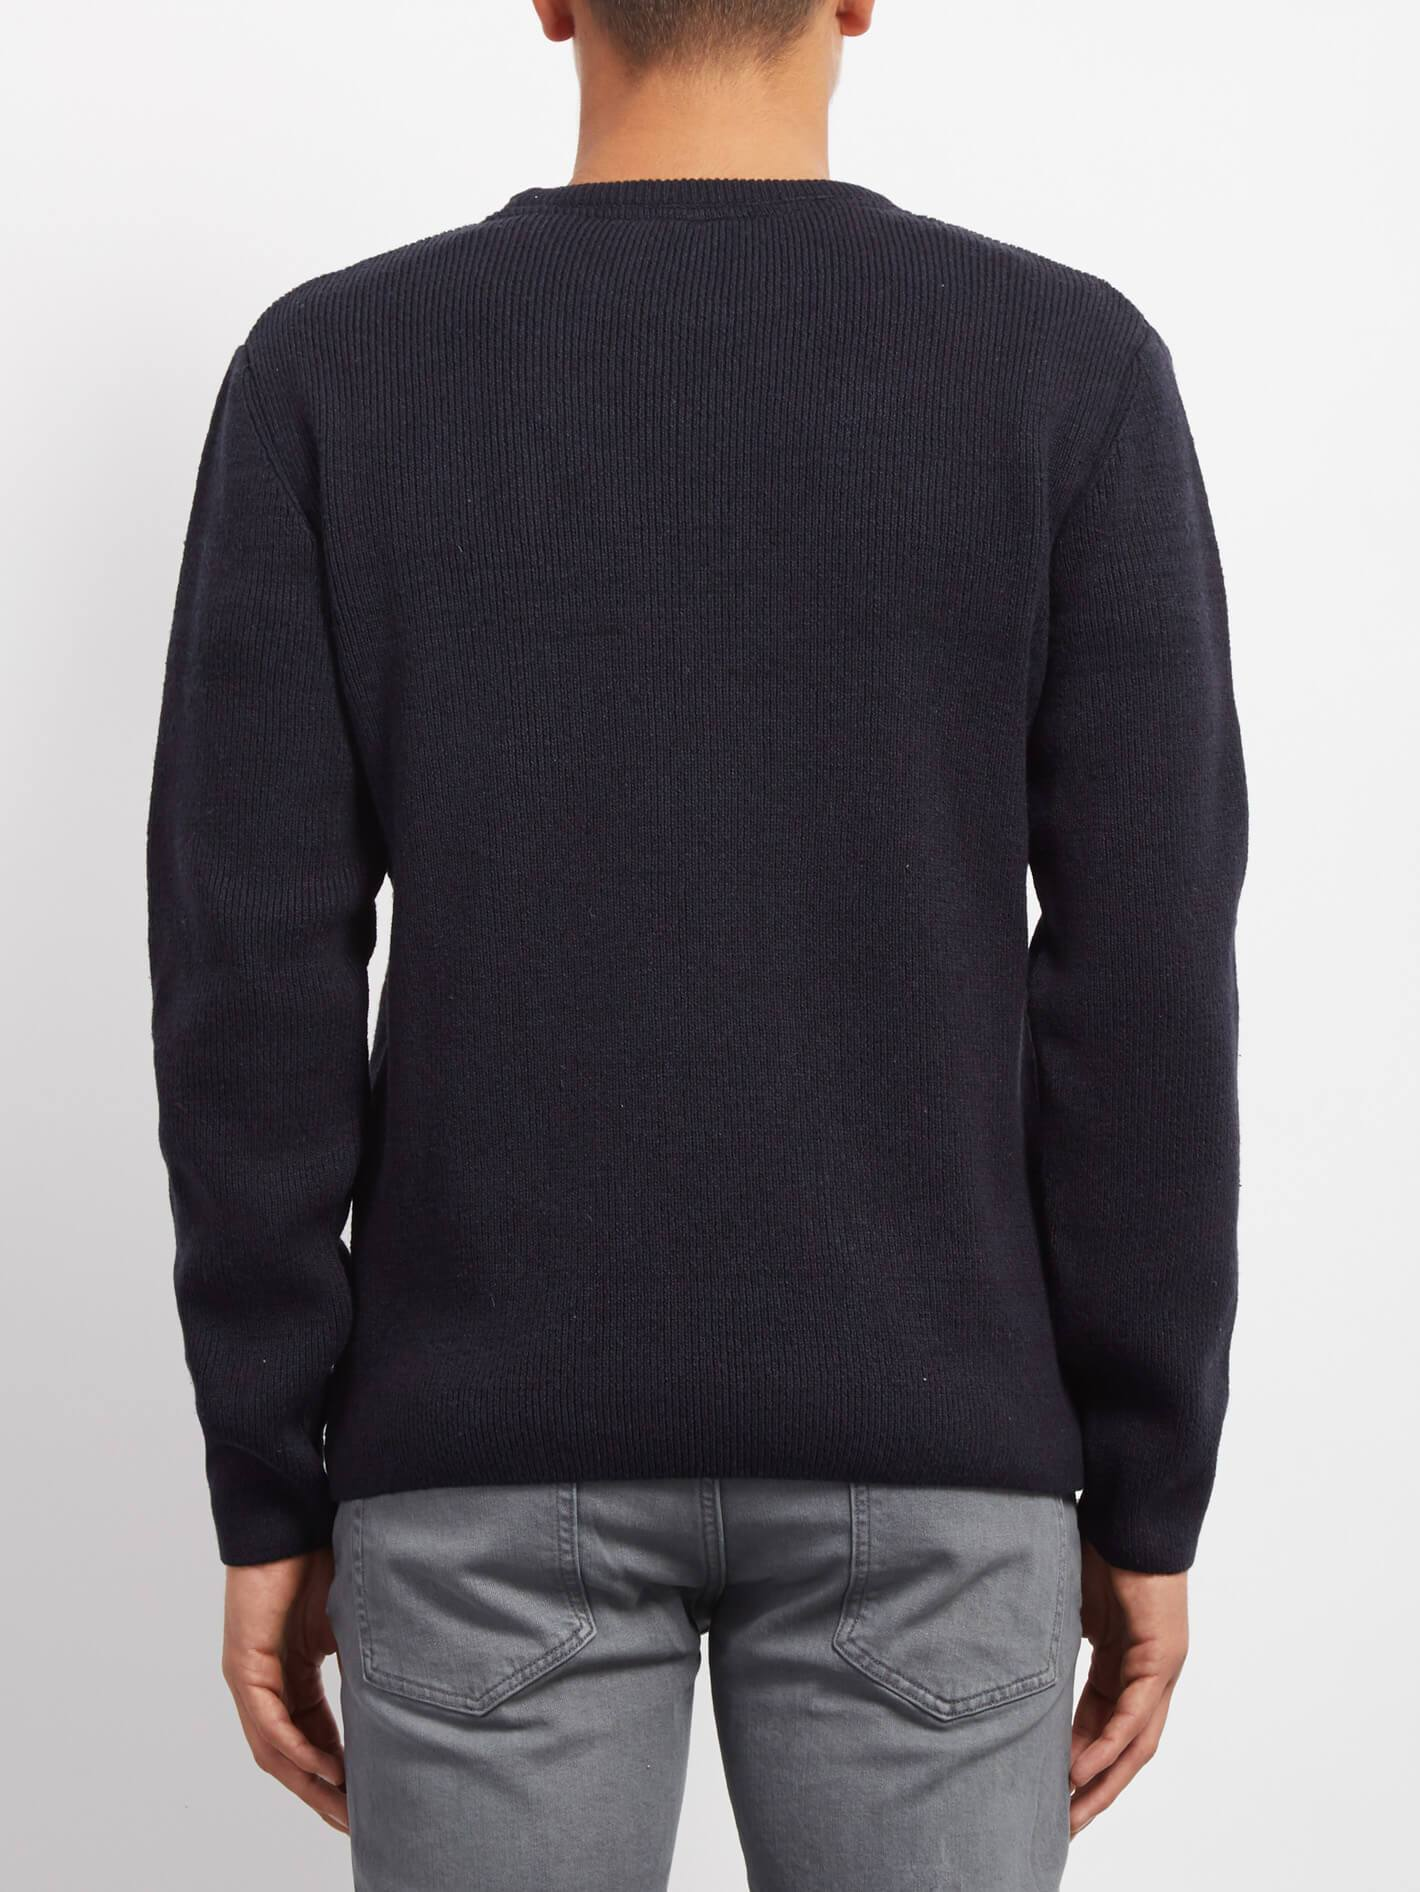 Uperstand Pullover - Black – Volcom Europe 2e923f7d6